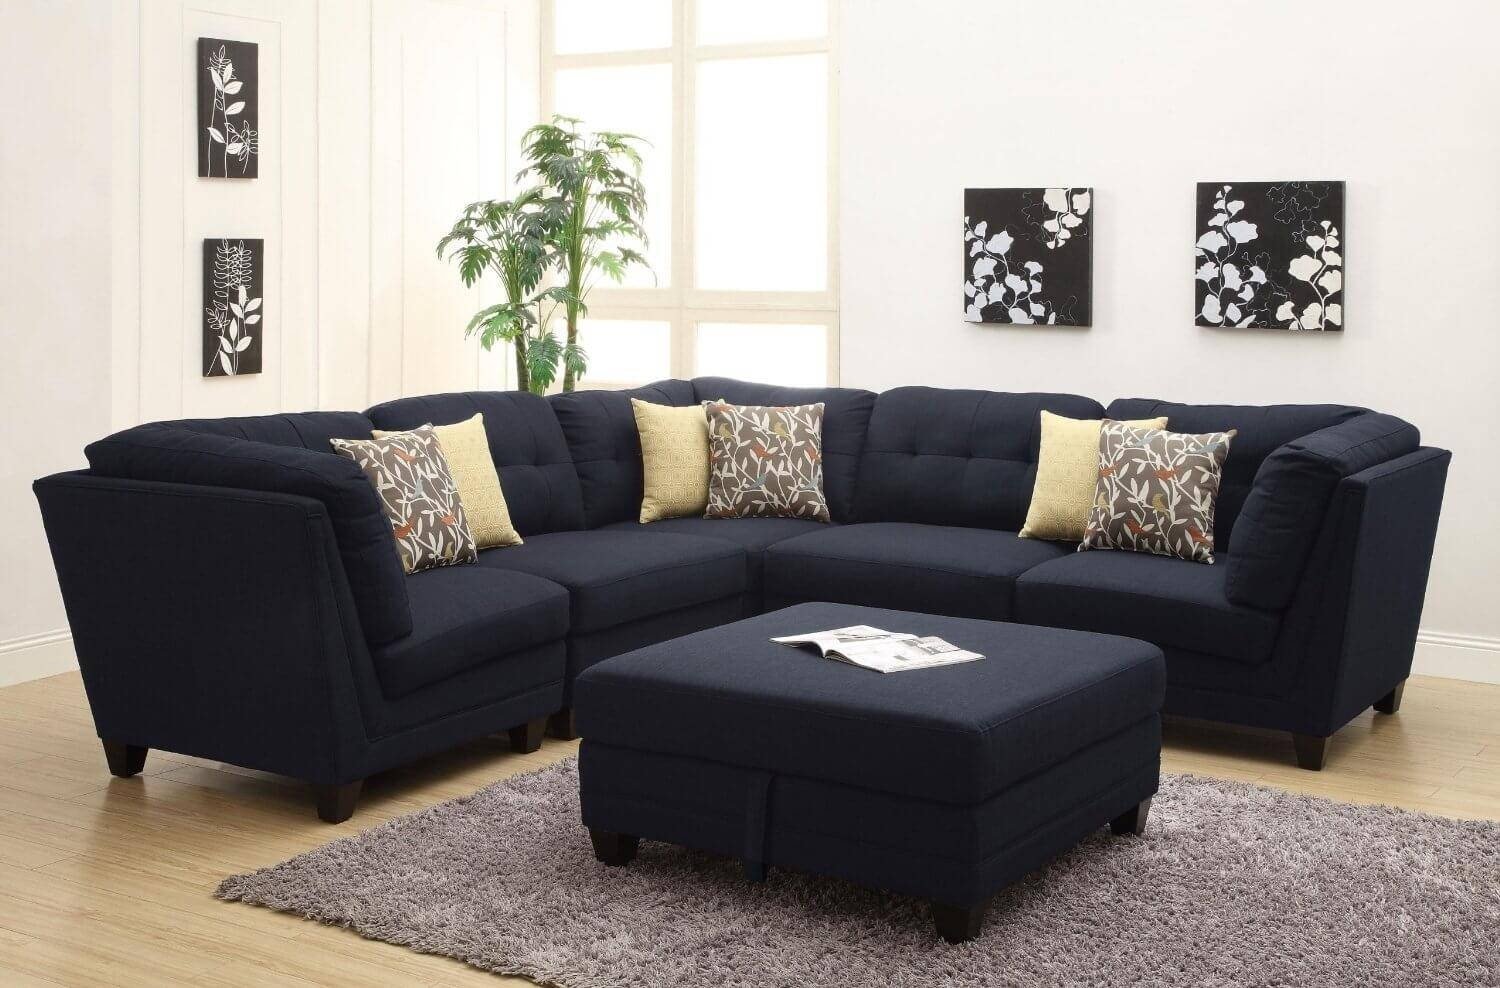 100 Beautiful Sectional Sofas Under $1,000 In Apartment Sofa Sectional (Image 1 of 30)